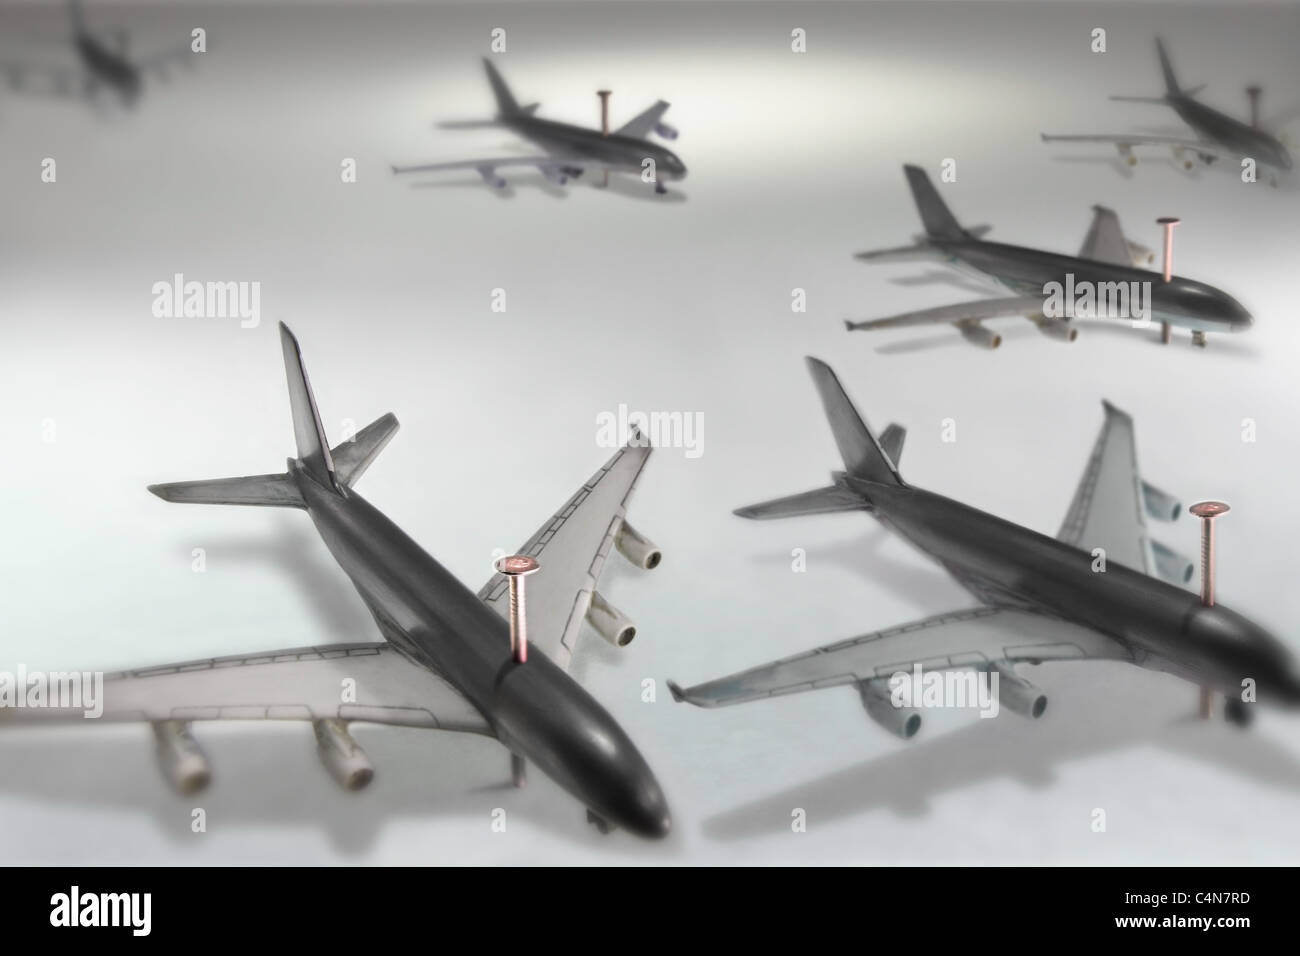 aircrafts grounded with nails like insects in the insectary, this symbolizes airline issues as strike, volcanic - Stock Image